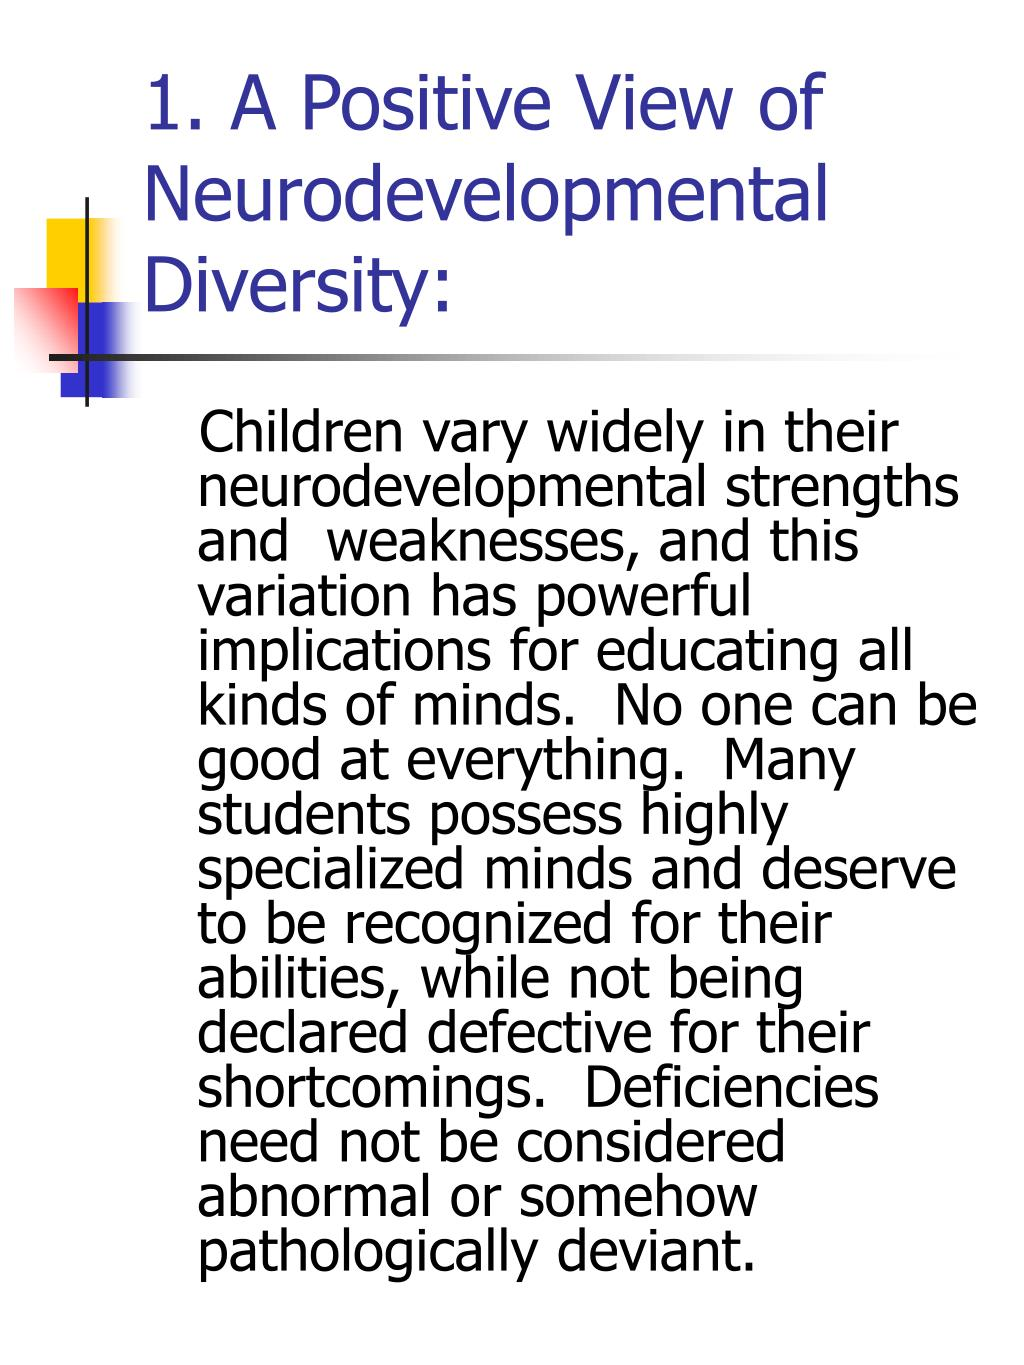 1. A Positive View of Neurodevelopmental Diversity: